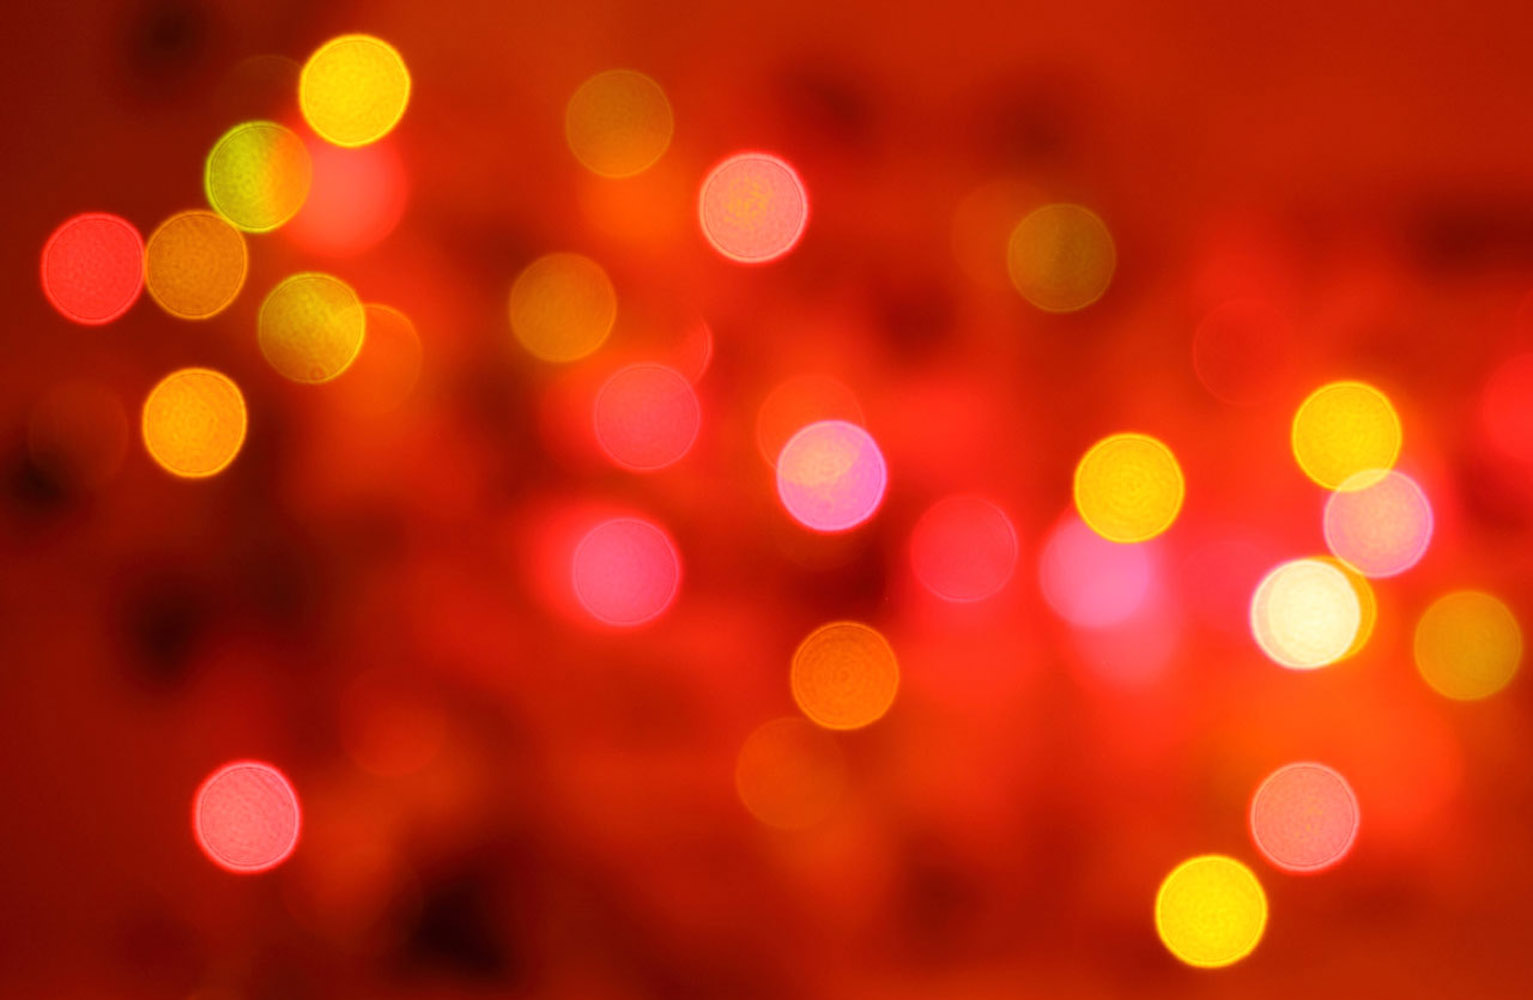 Xmas background images - Red Christmas Background Wallpaper Bokeh Jpg